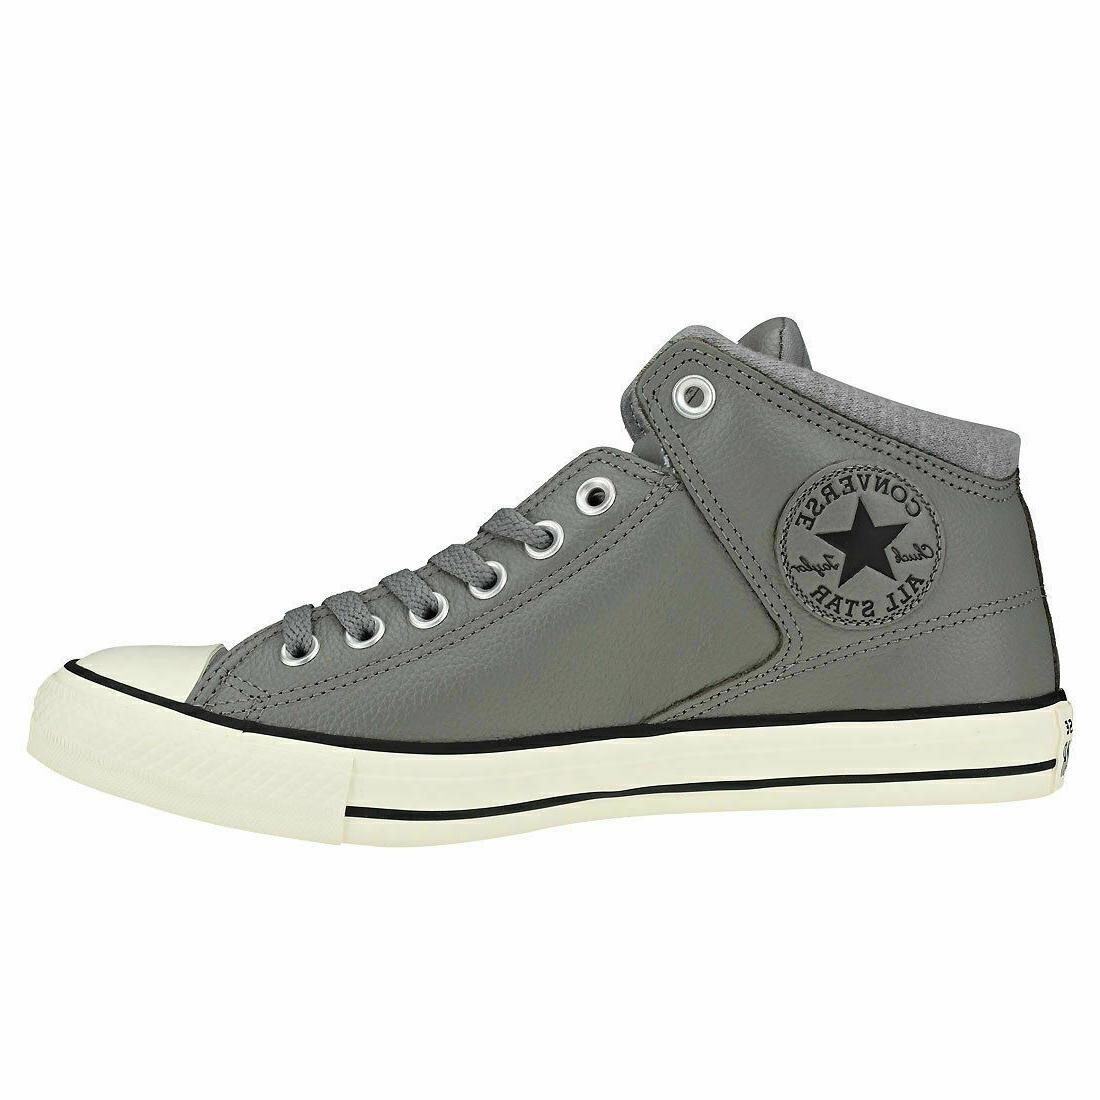 New High Leather Size